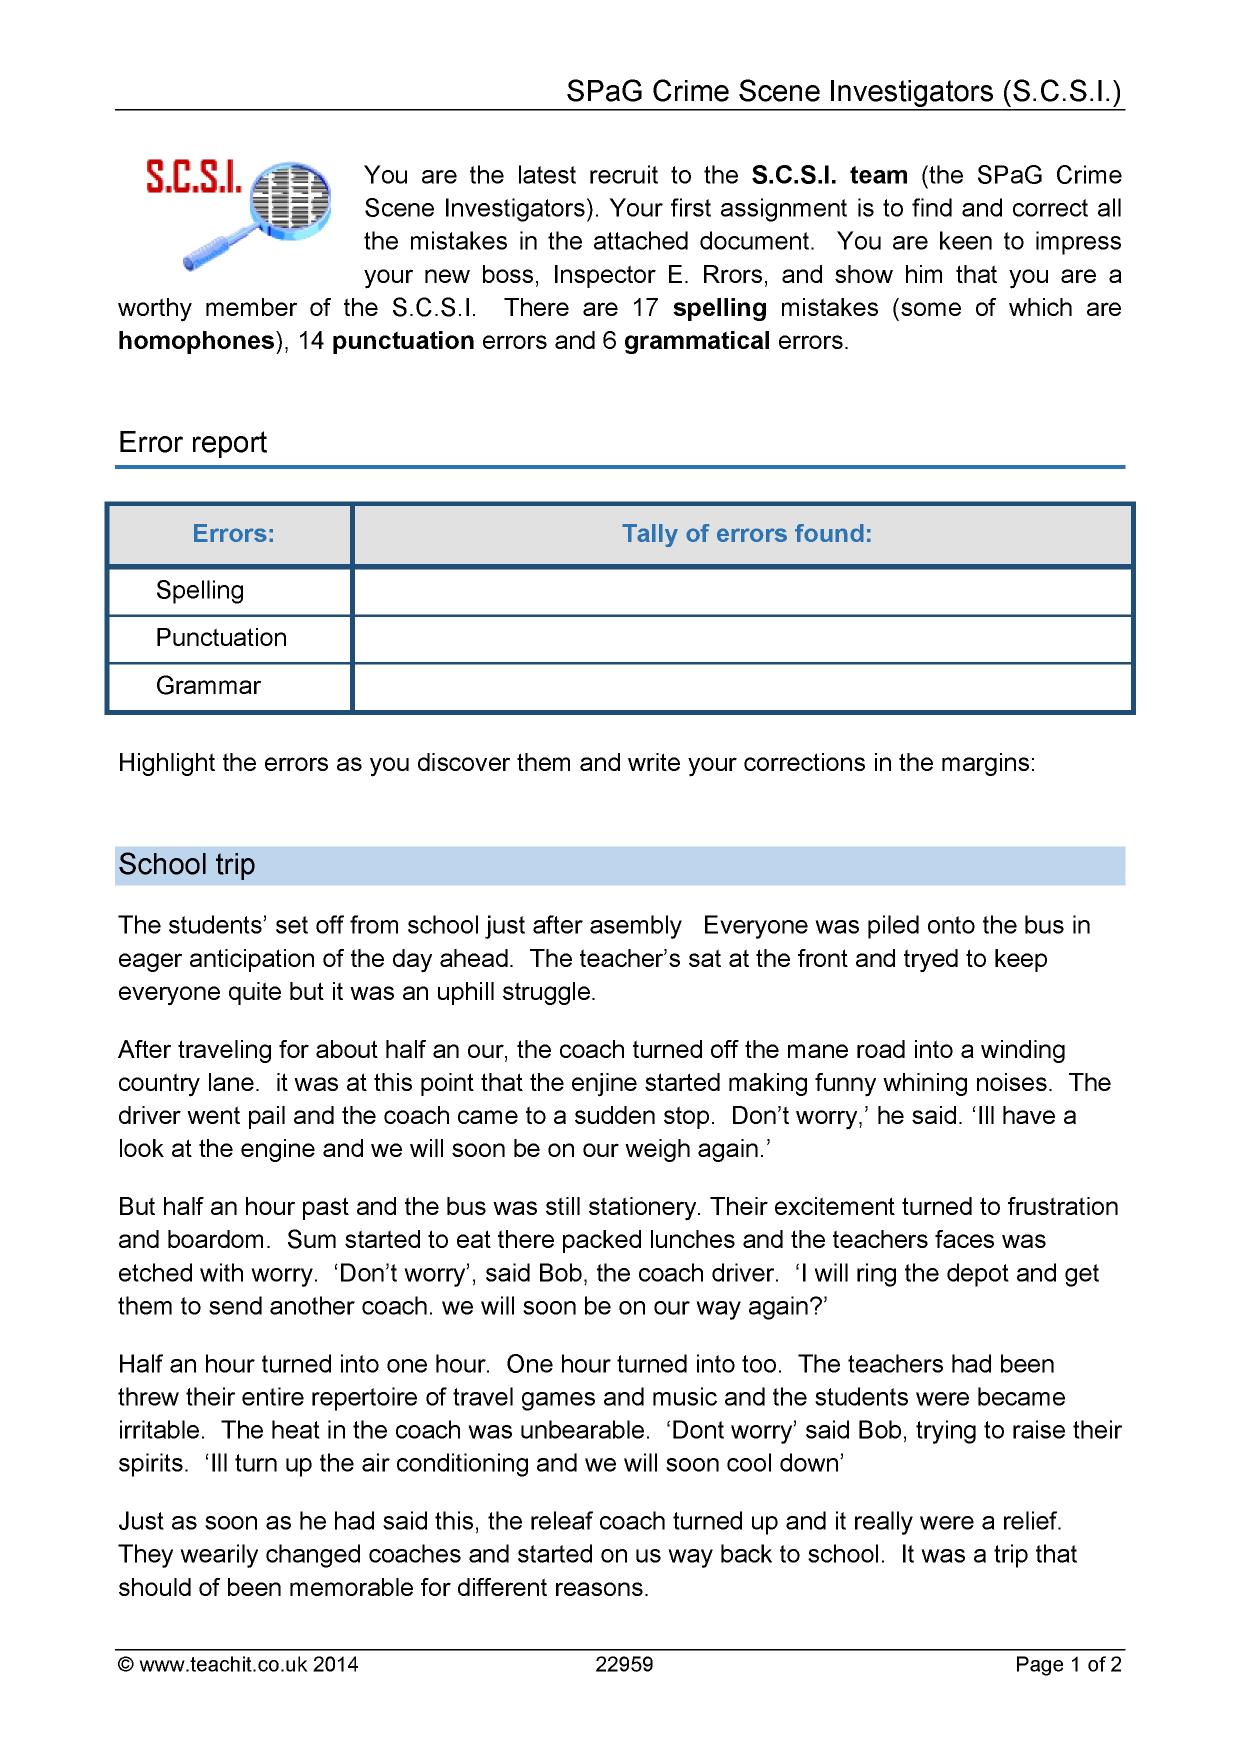 Proofreading Worksheet Ks2